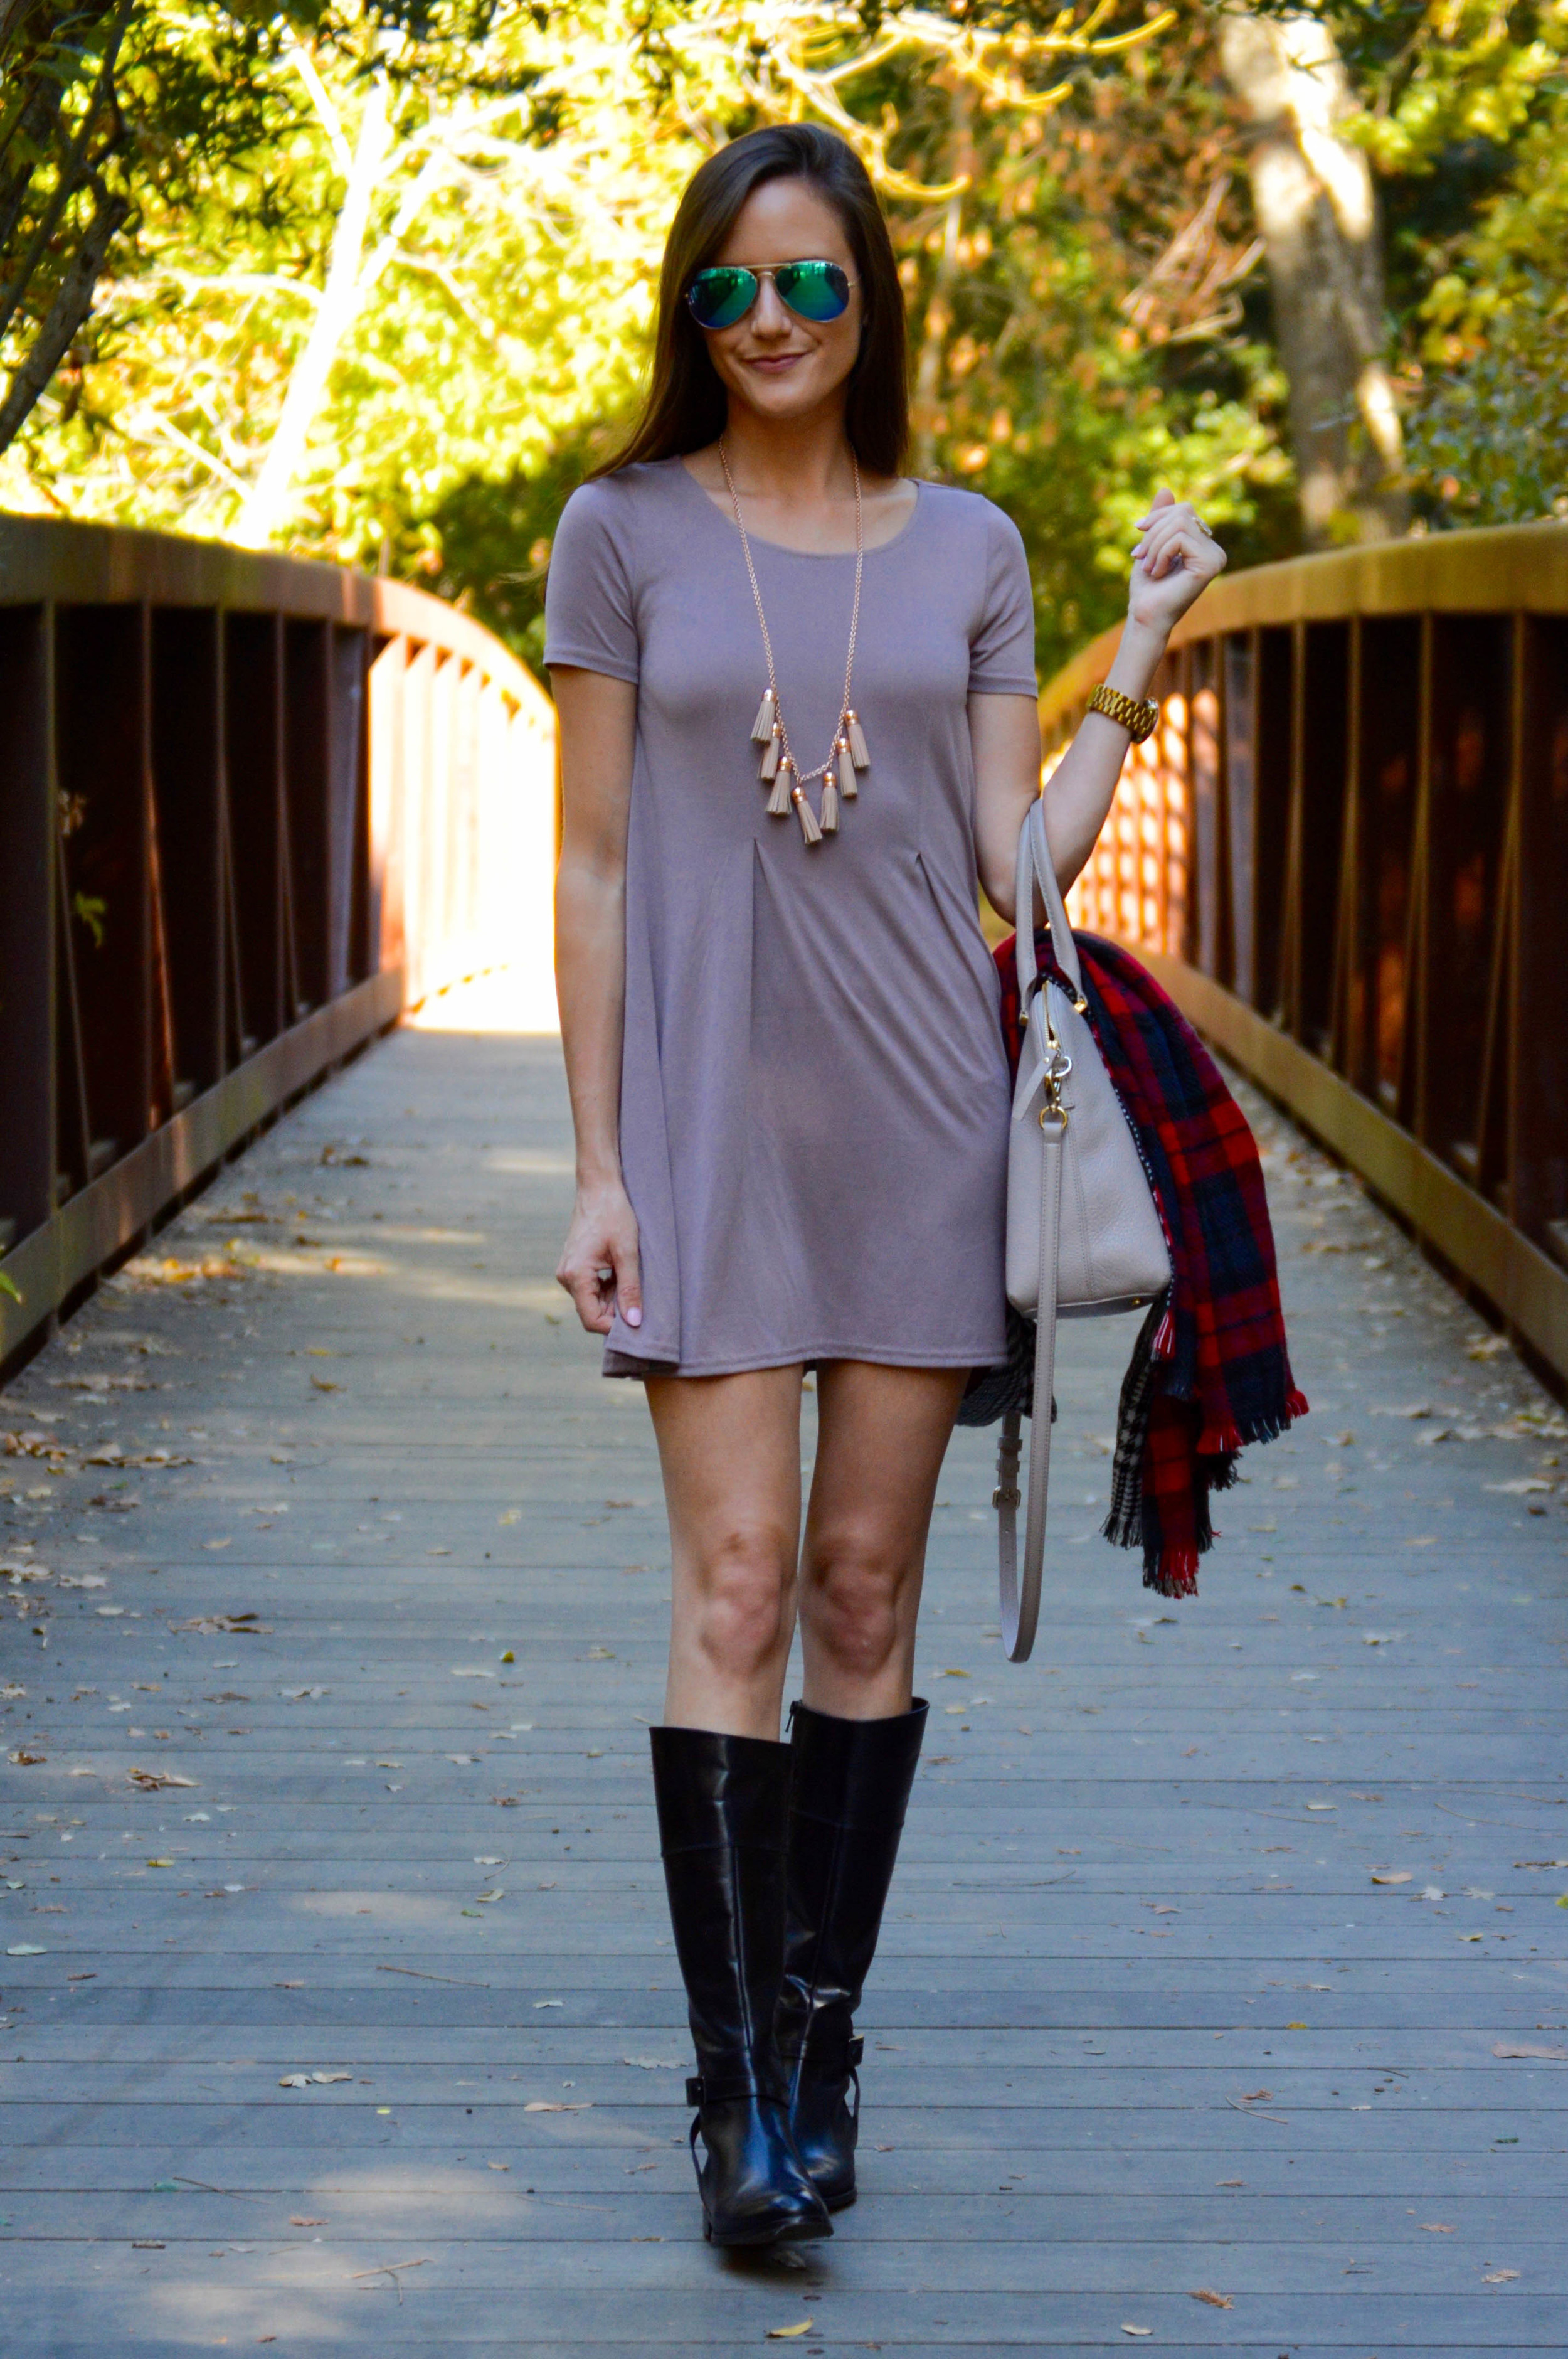 Shop the Look Below. Dress:  Urban Outfitters (I own two colors and it's SO comfy1)Boots: c/o  Skinnycalf Boots . Bag:  Kate Spade . Scarf: I honestly can't remember, but similar  here  and  here . Necklace:  BaubleBar . Sunglasses: Off brand. Similar  here  and  here .